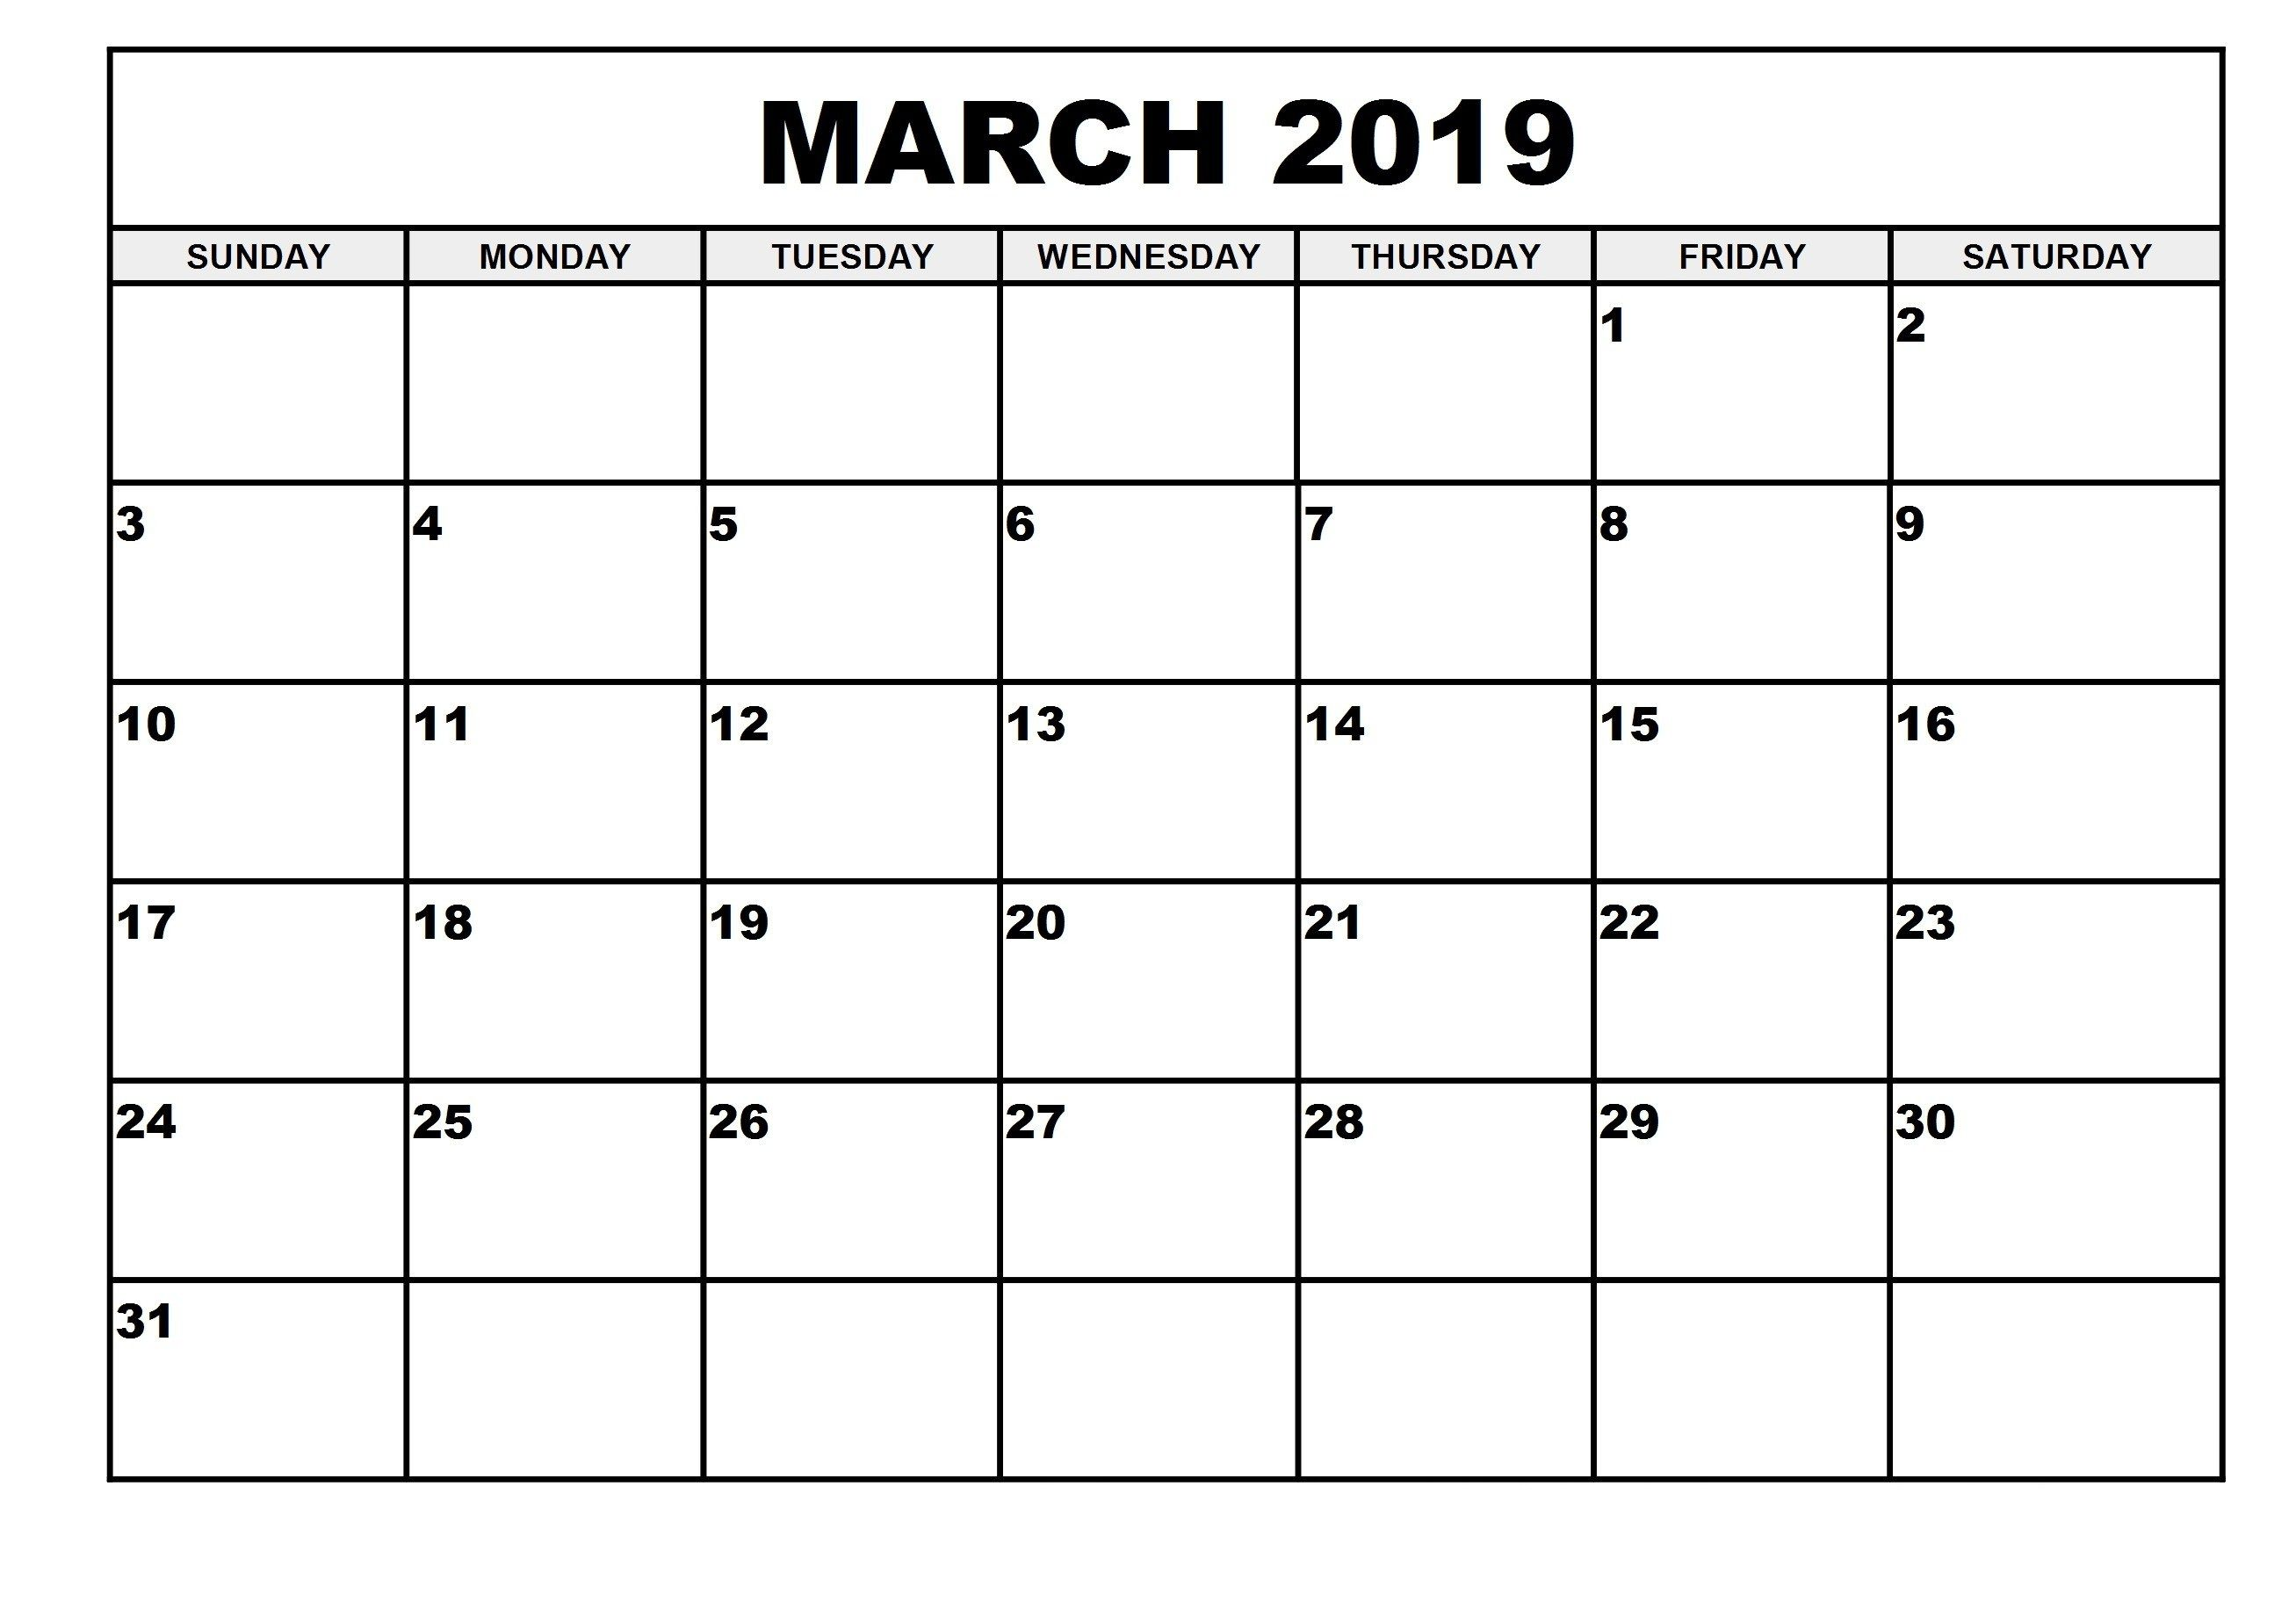 March Calendar Template 2019 March 2019 Calendar PDF   Free August 2019 Calendar Printable